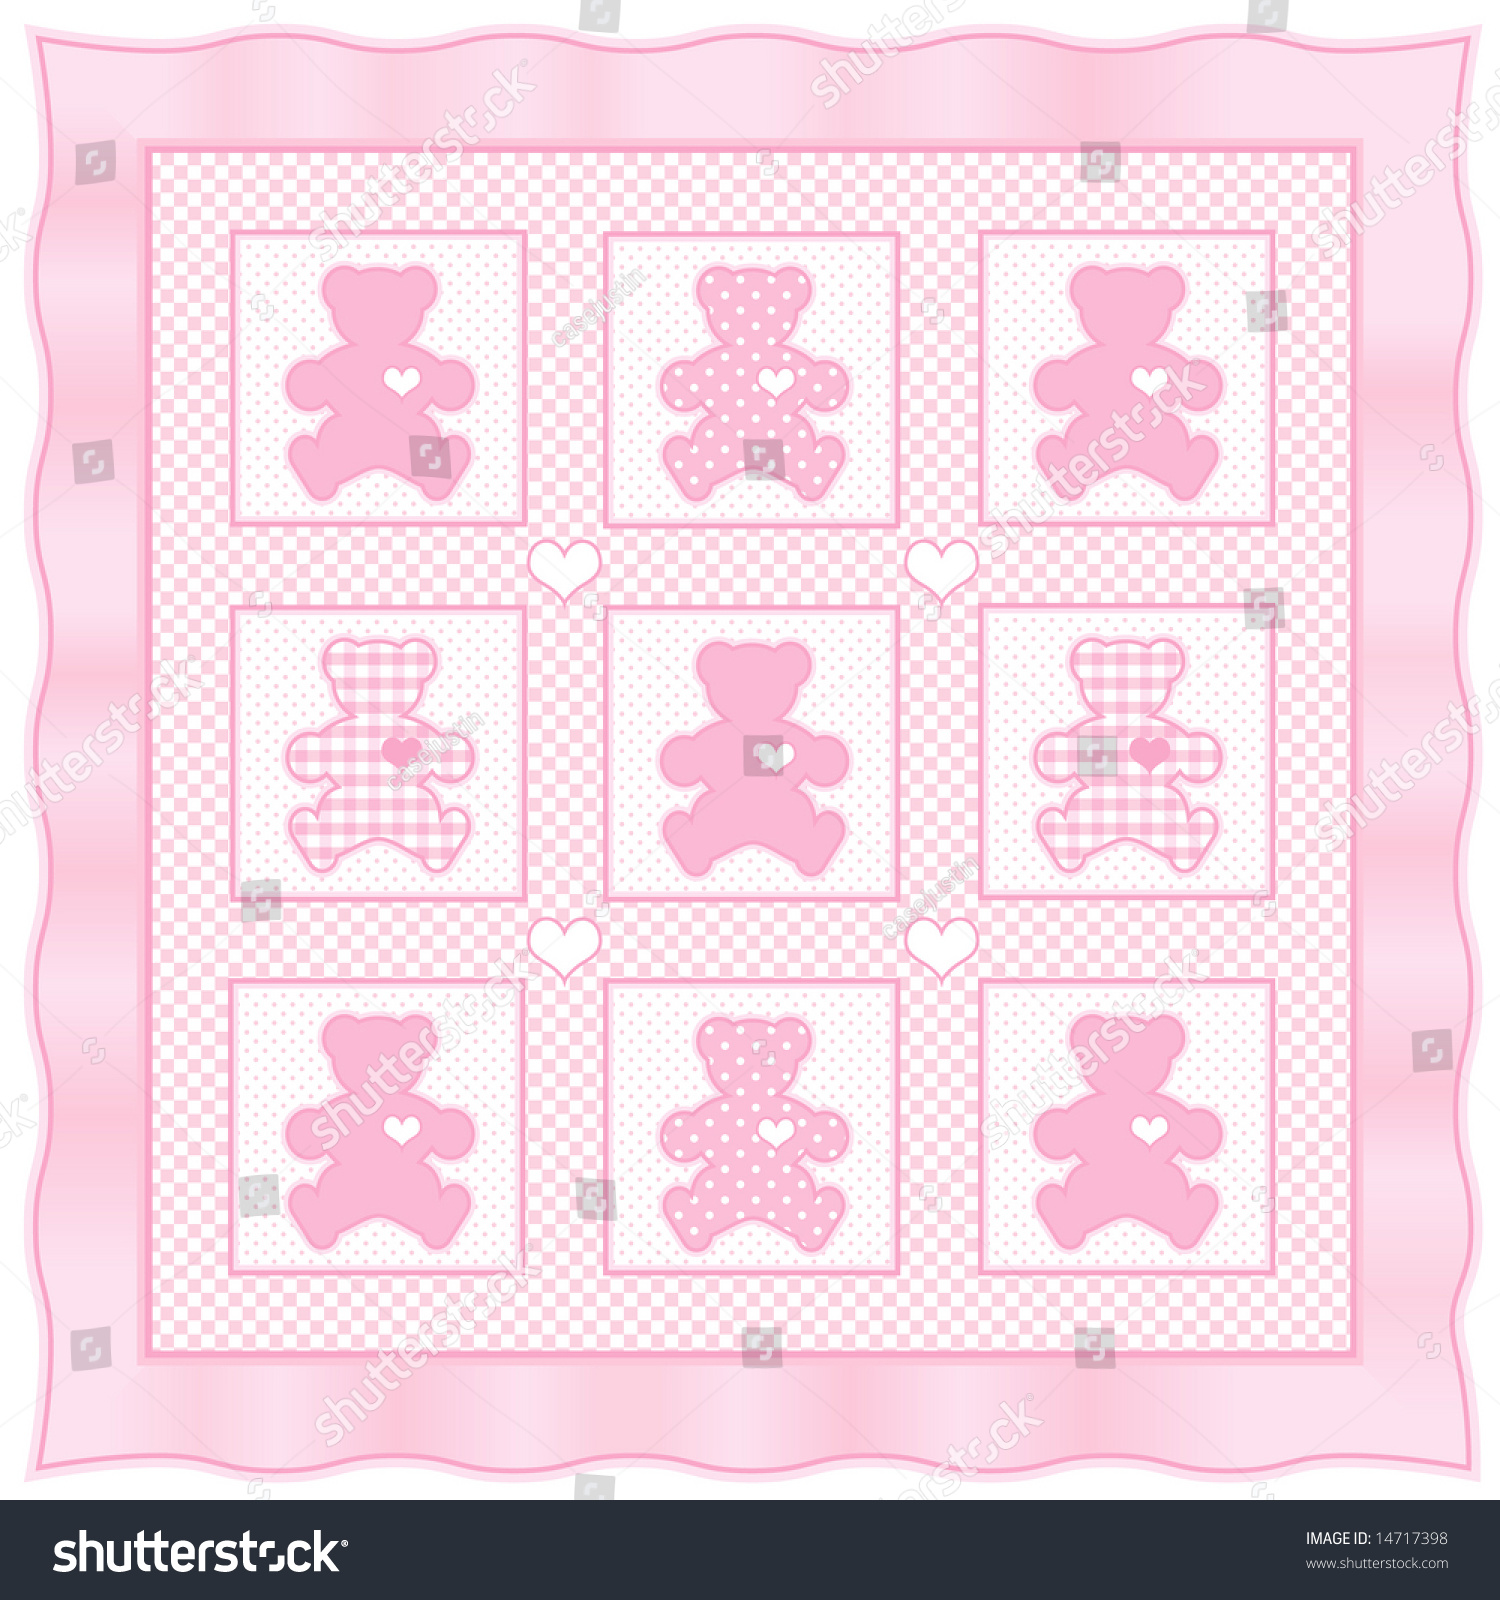 teddy bear quilt old fashioned patchwork stock illustration